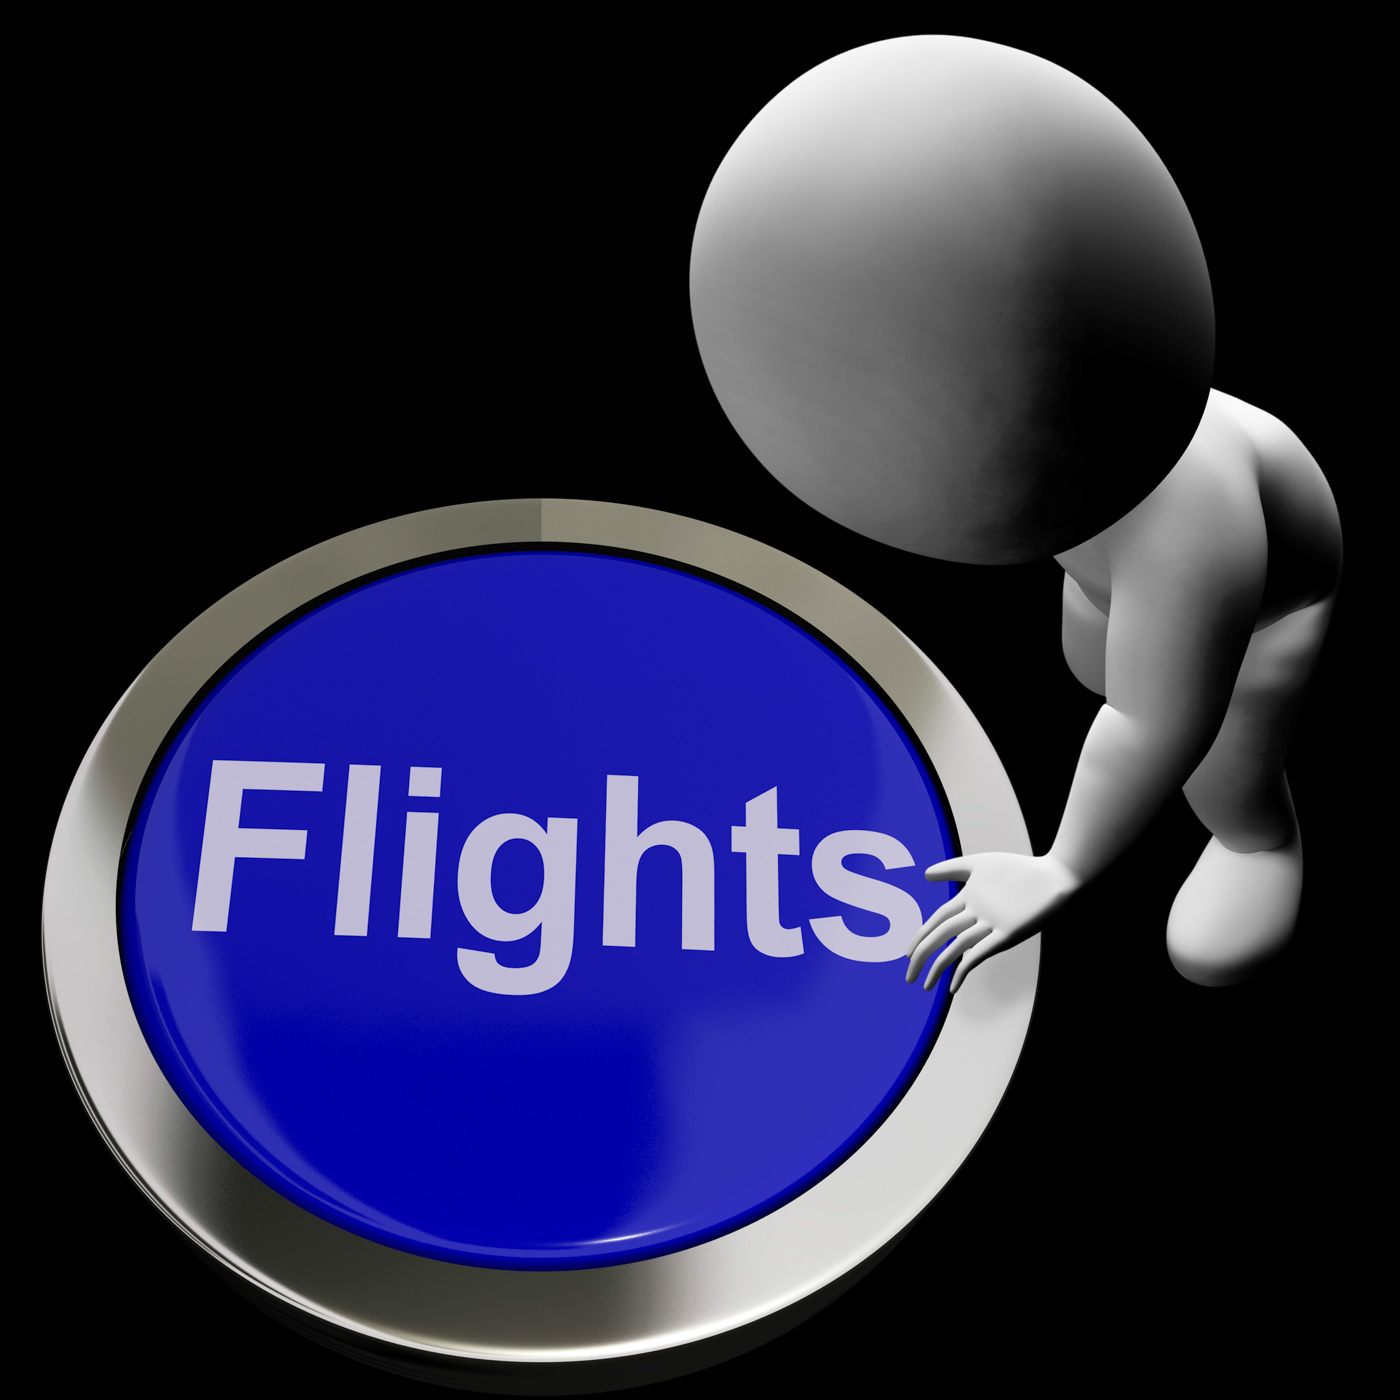 Flights button for overseas vacation or holidays photo